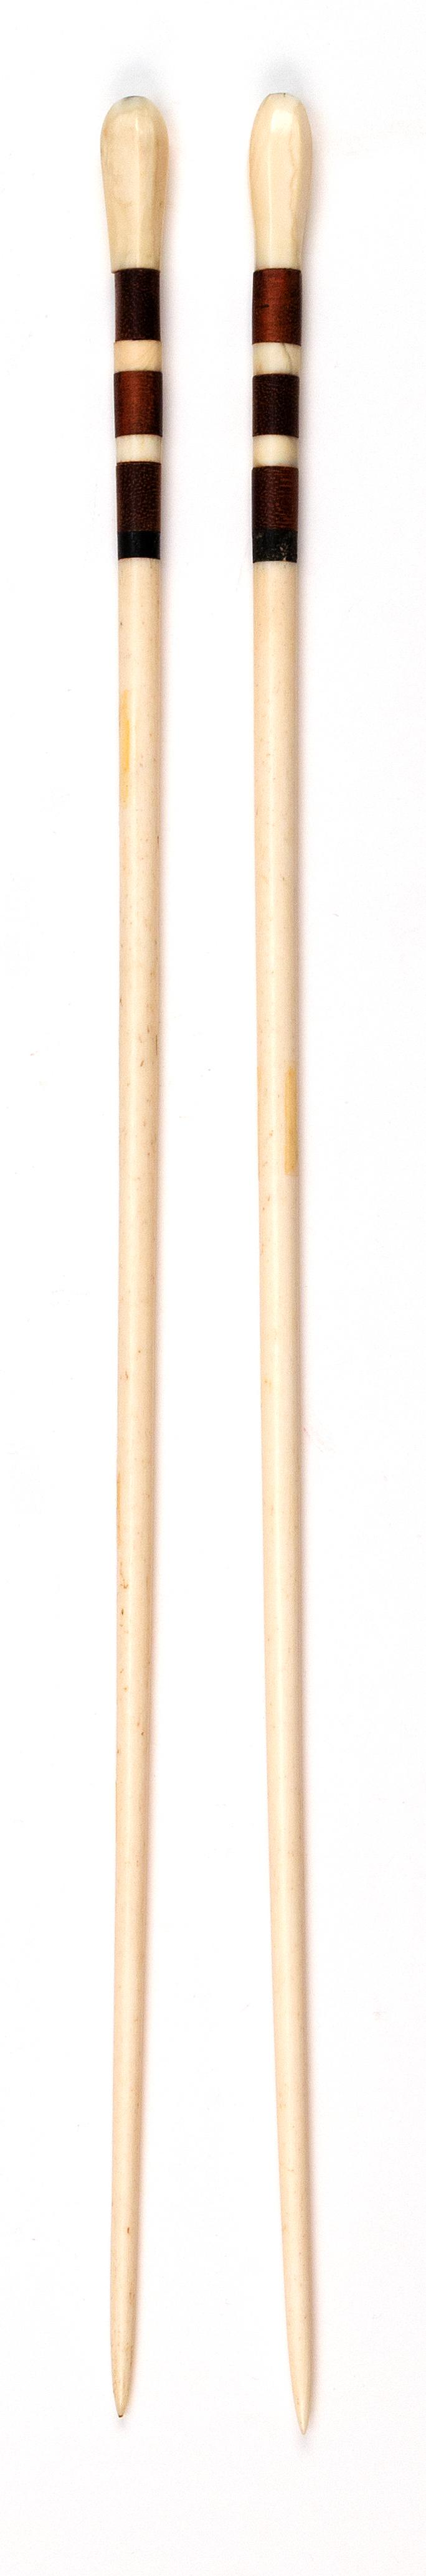 PAIR OF WHALEBONE AND WHALE IVORY KNITTING NEEDLES Hexagonal finials. Exotic wood and whale ivory banding below finials. Lengths 15....